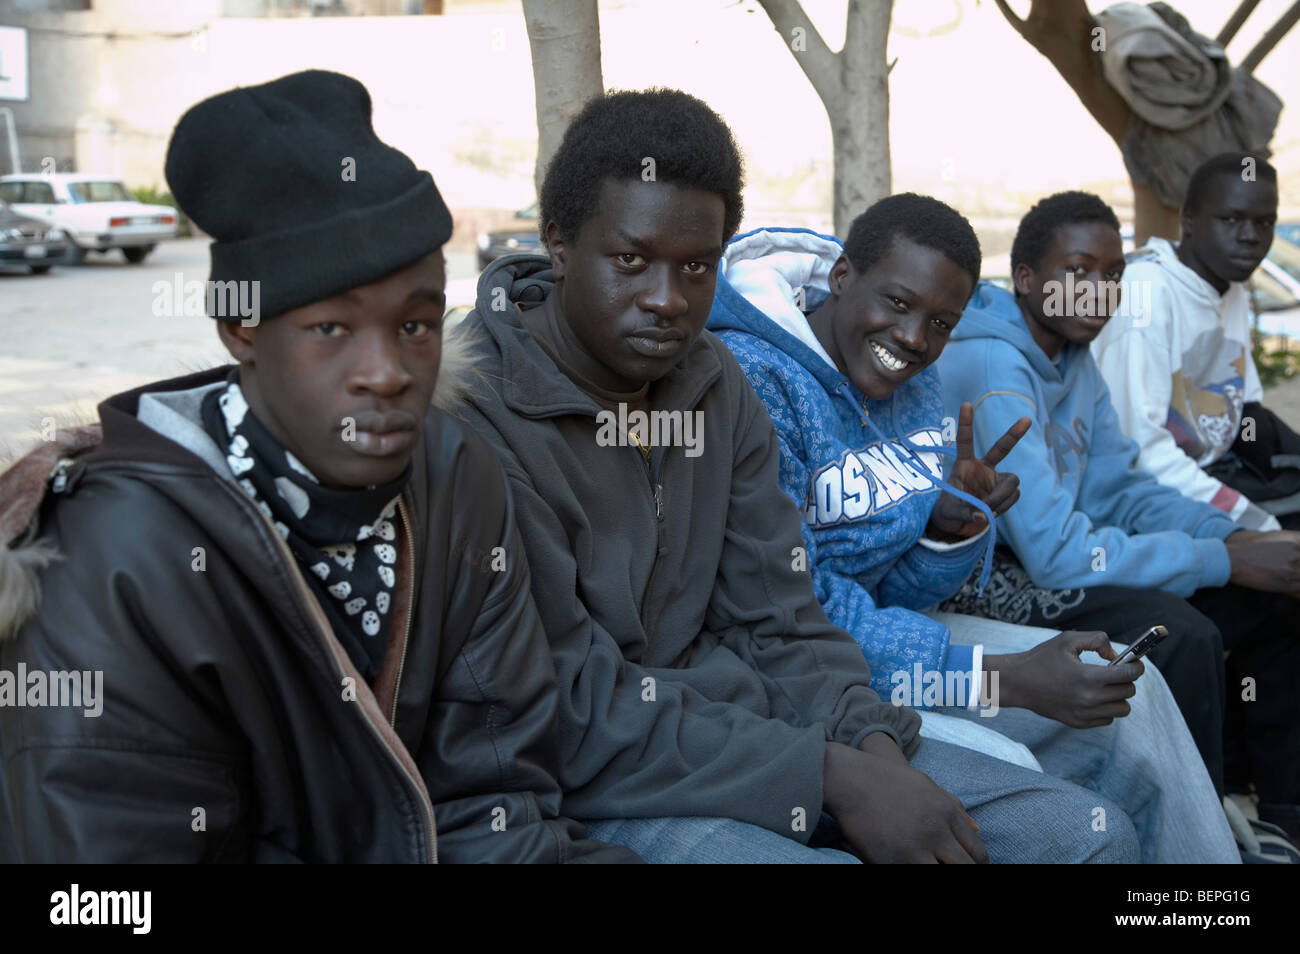 egypt image shows sudanese refugees living in alexandria taken at